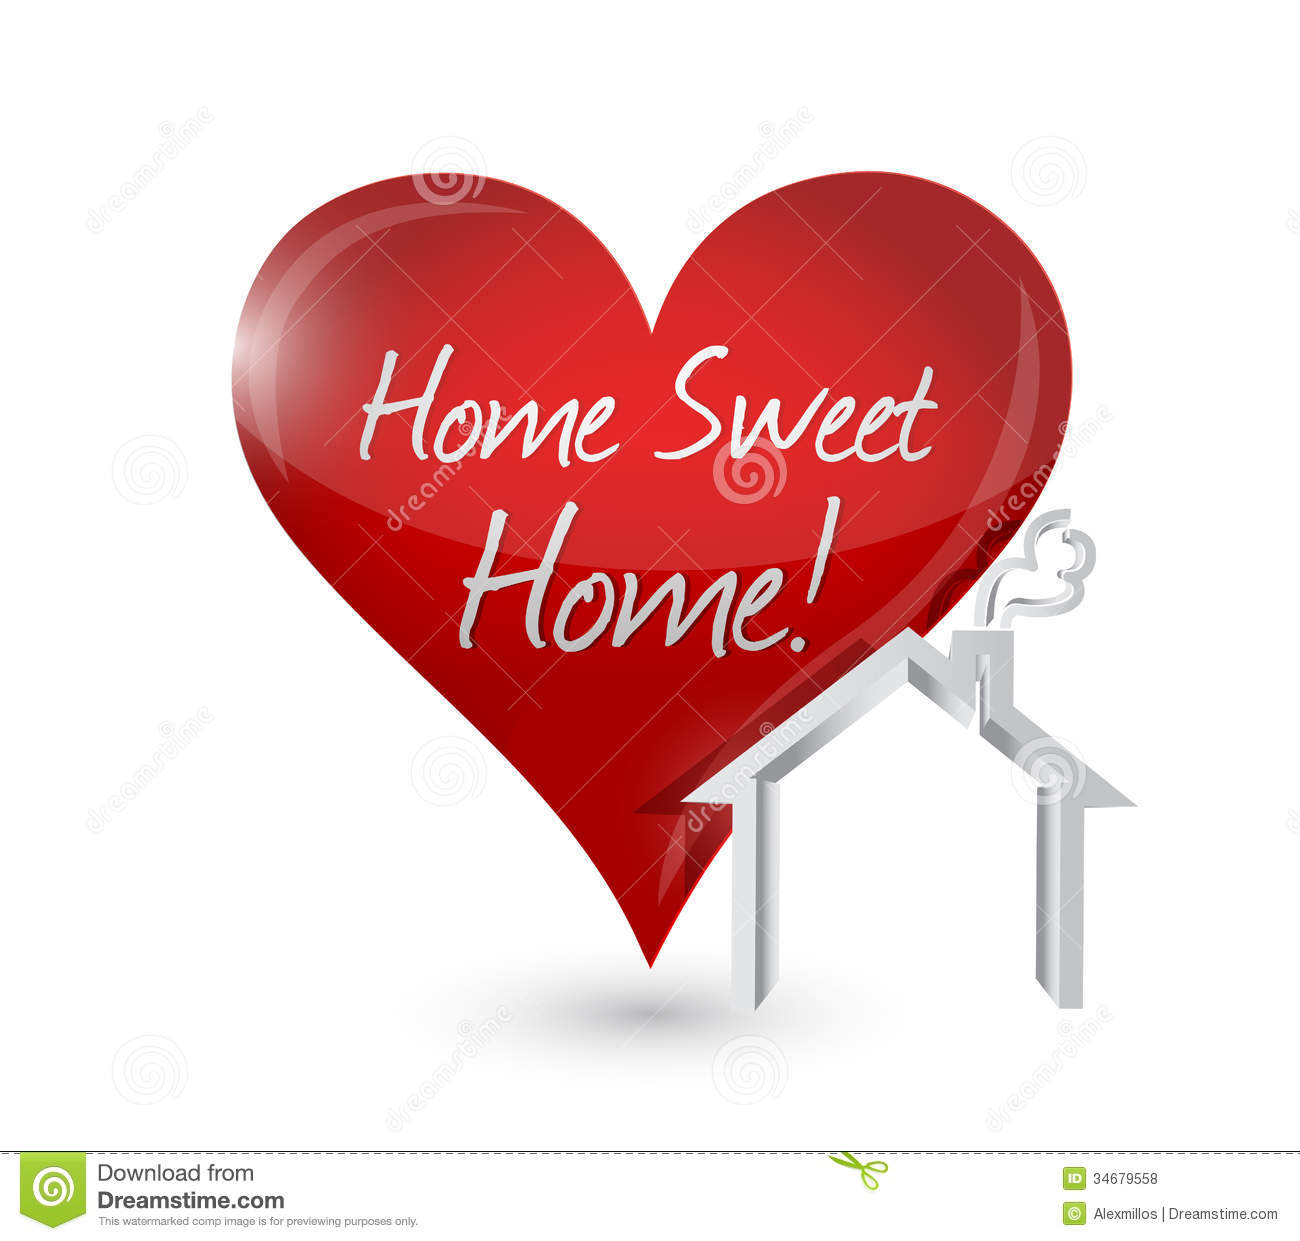 Home Sweet Home Heart Illustration Design Royalty Free Stock Photos